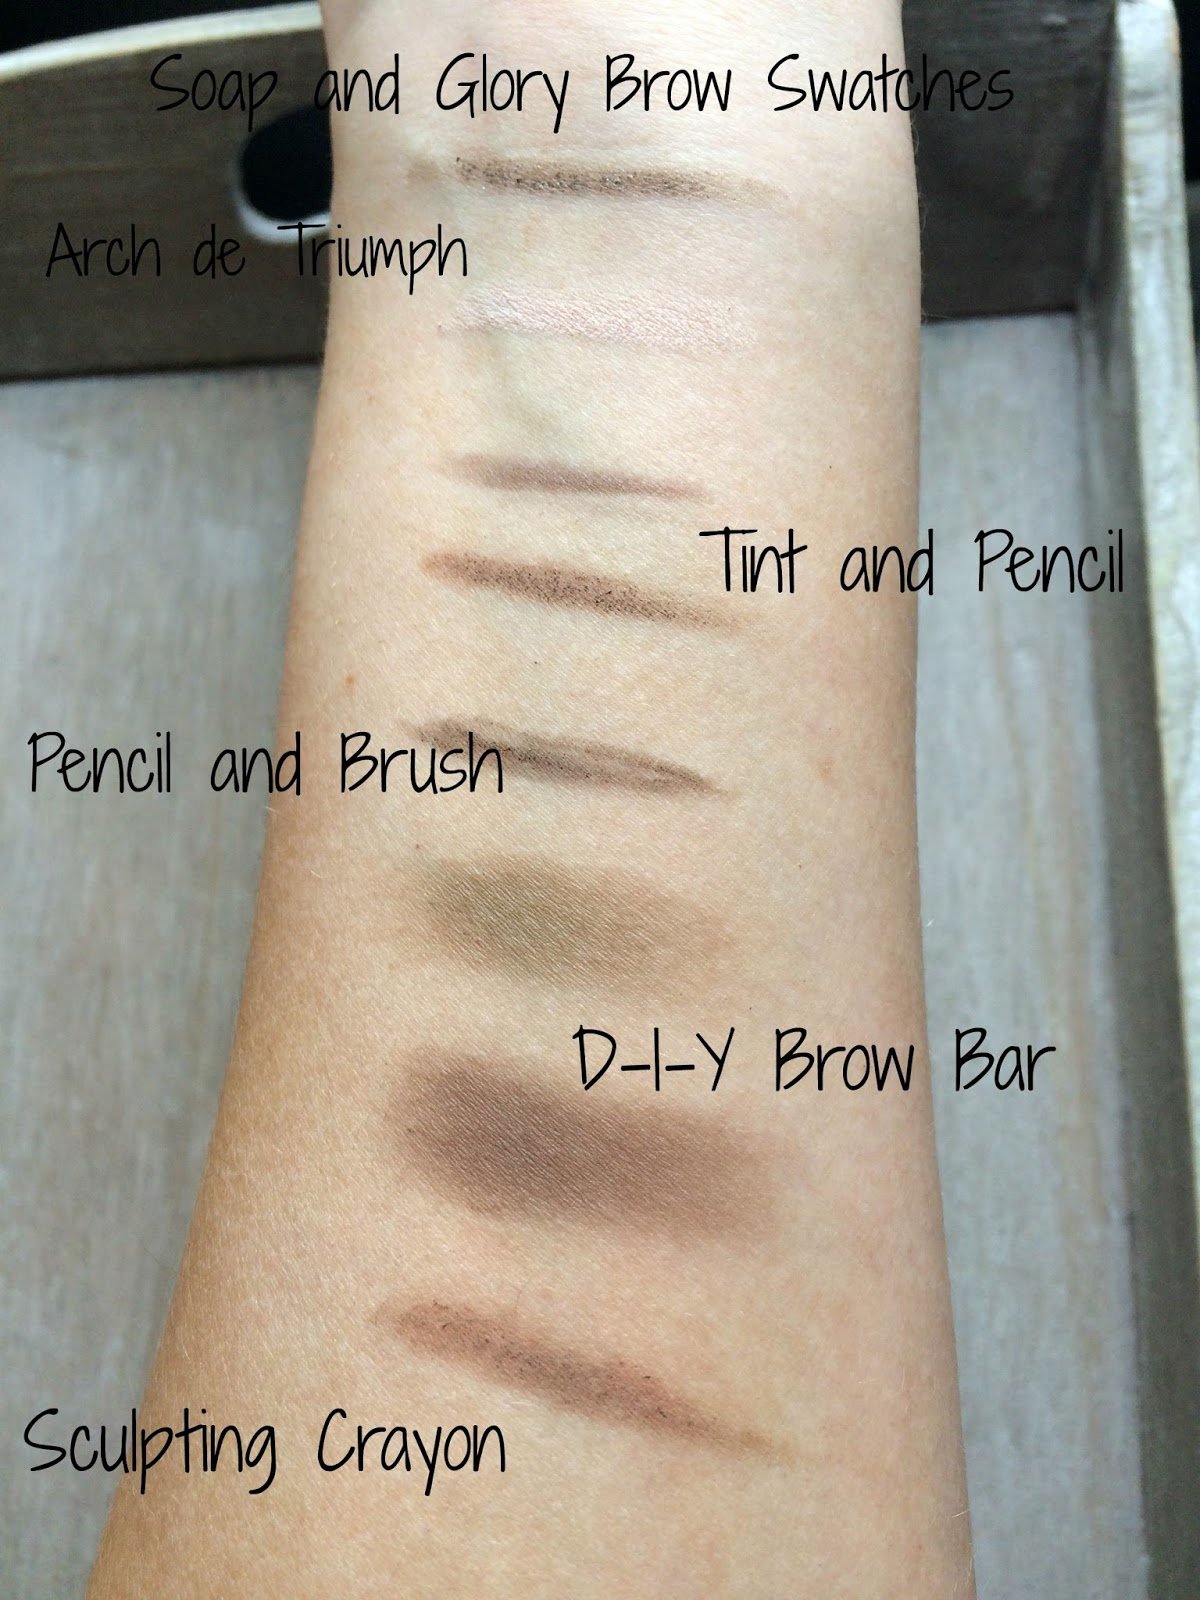 Soap and Glory brow products swatches archery d-i-y brow bar arch de triumph